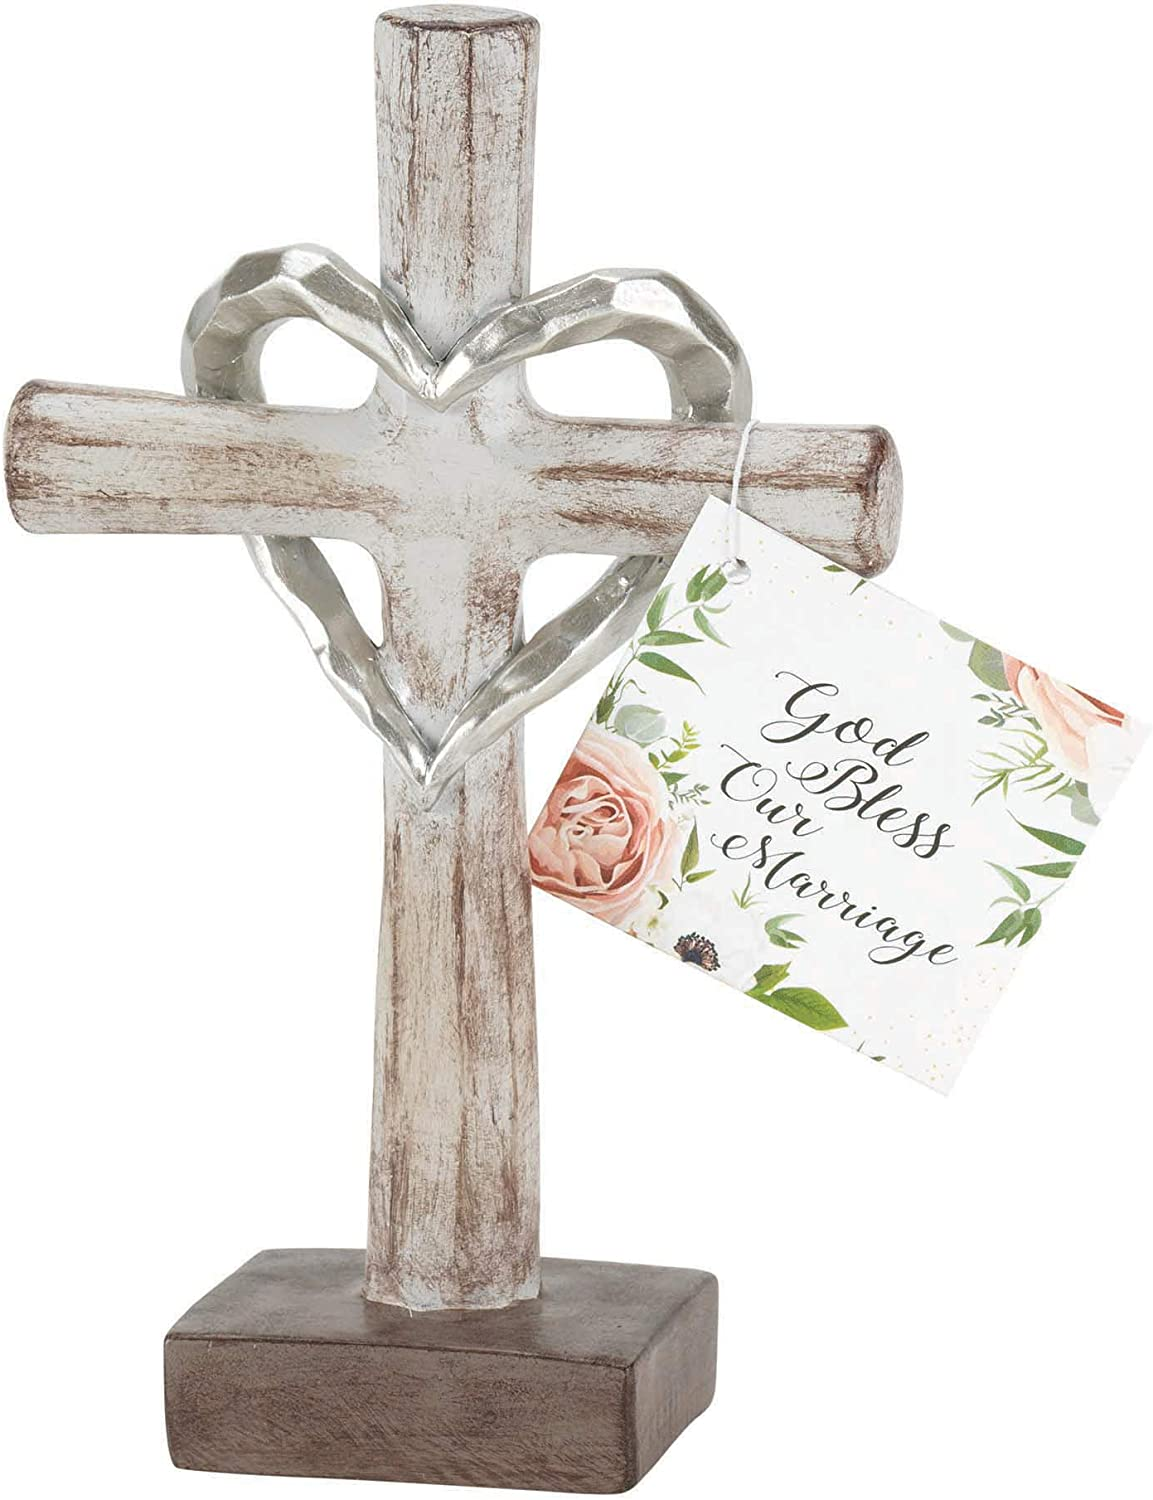 God Bless Our Marriage Distressed White 6 x 2 Inch Resin Stone Tabletop Cross